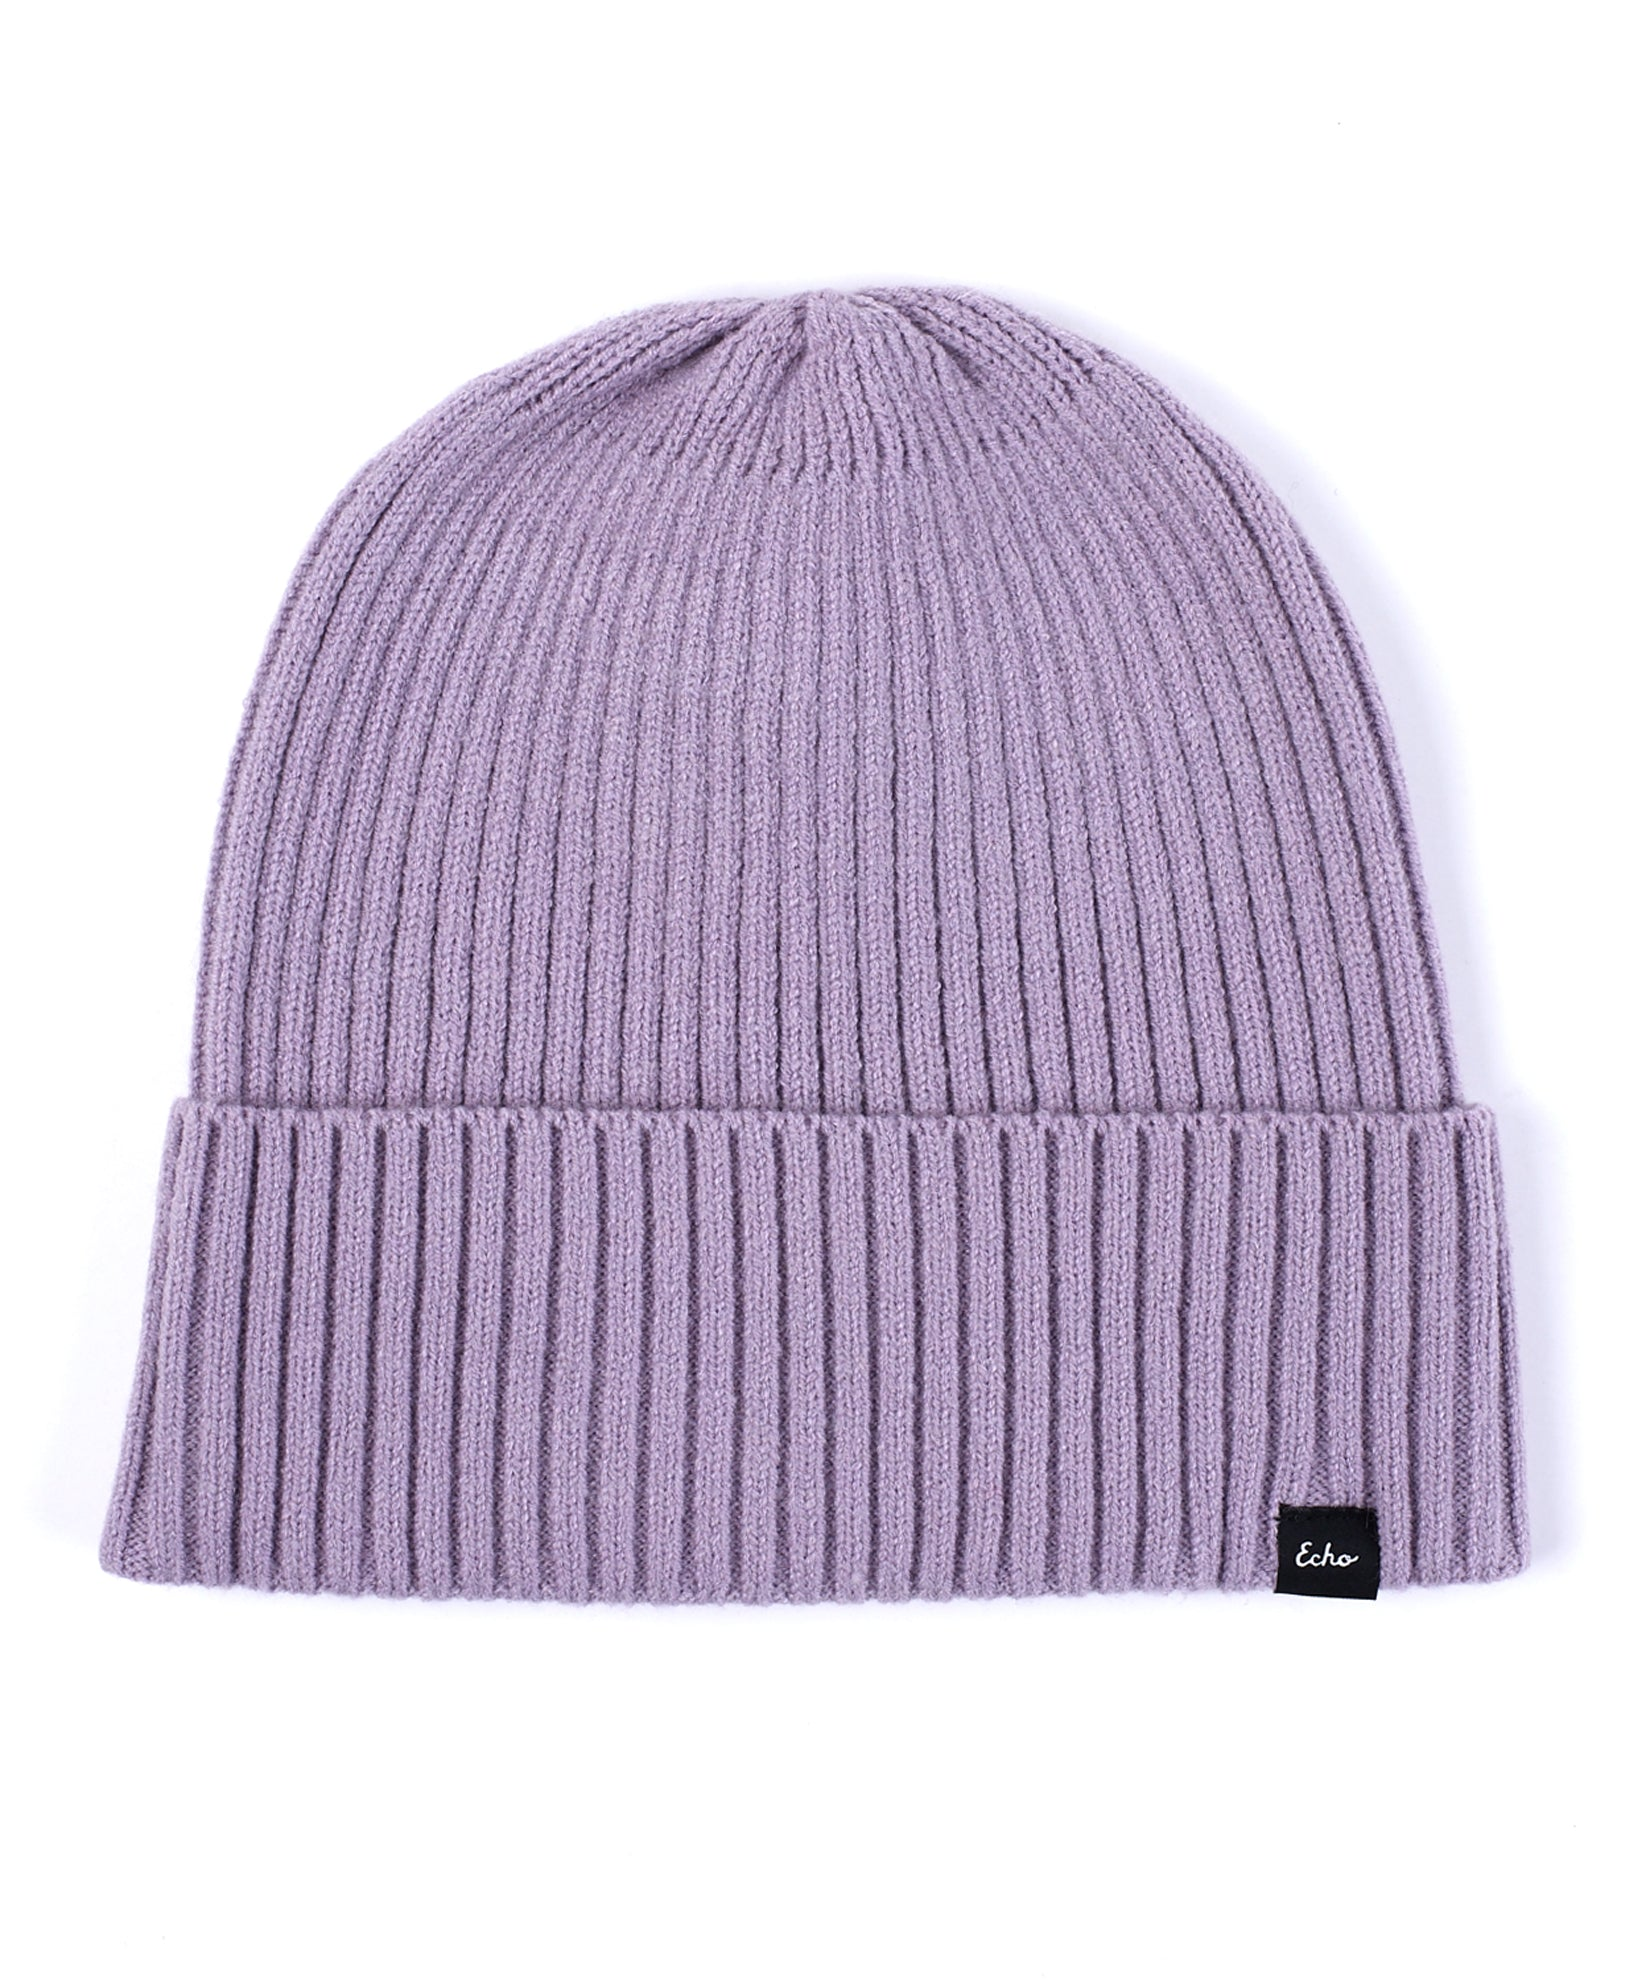 Smoked Lilac - Active Stretch Ribbed Cuff Beanie